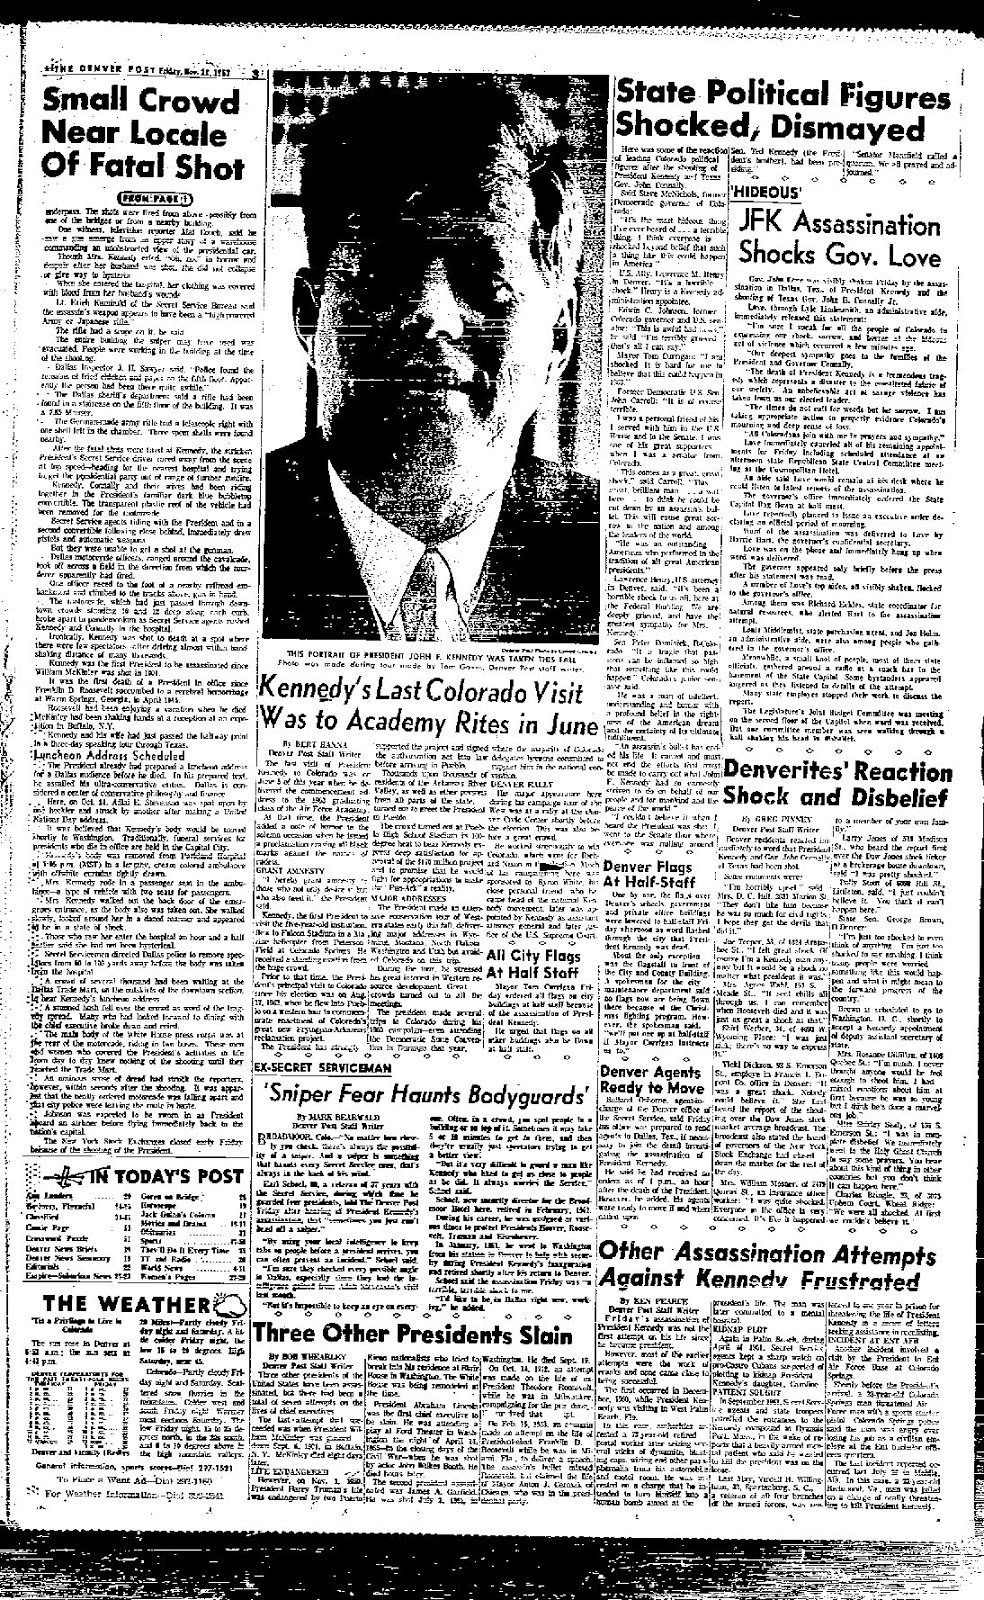 The third page of the Denver Post's day-of coverage of JFK's assassination